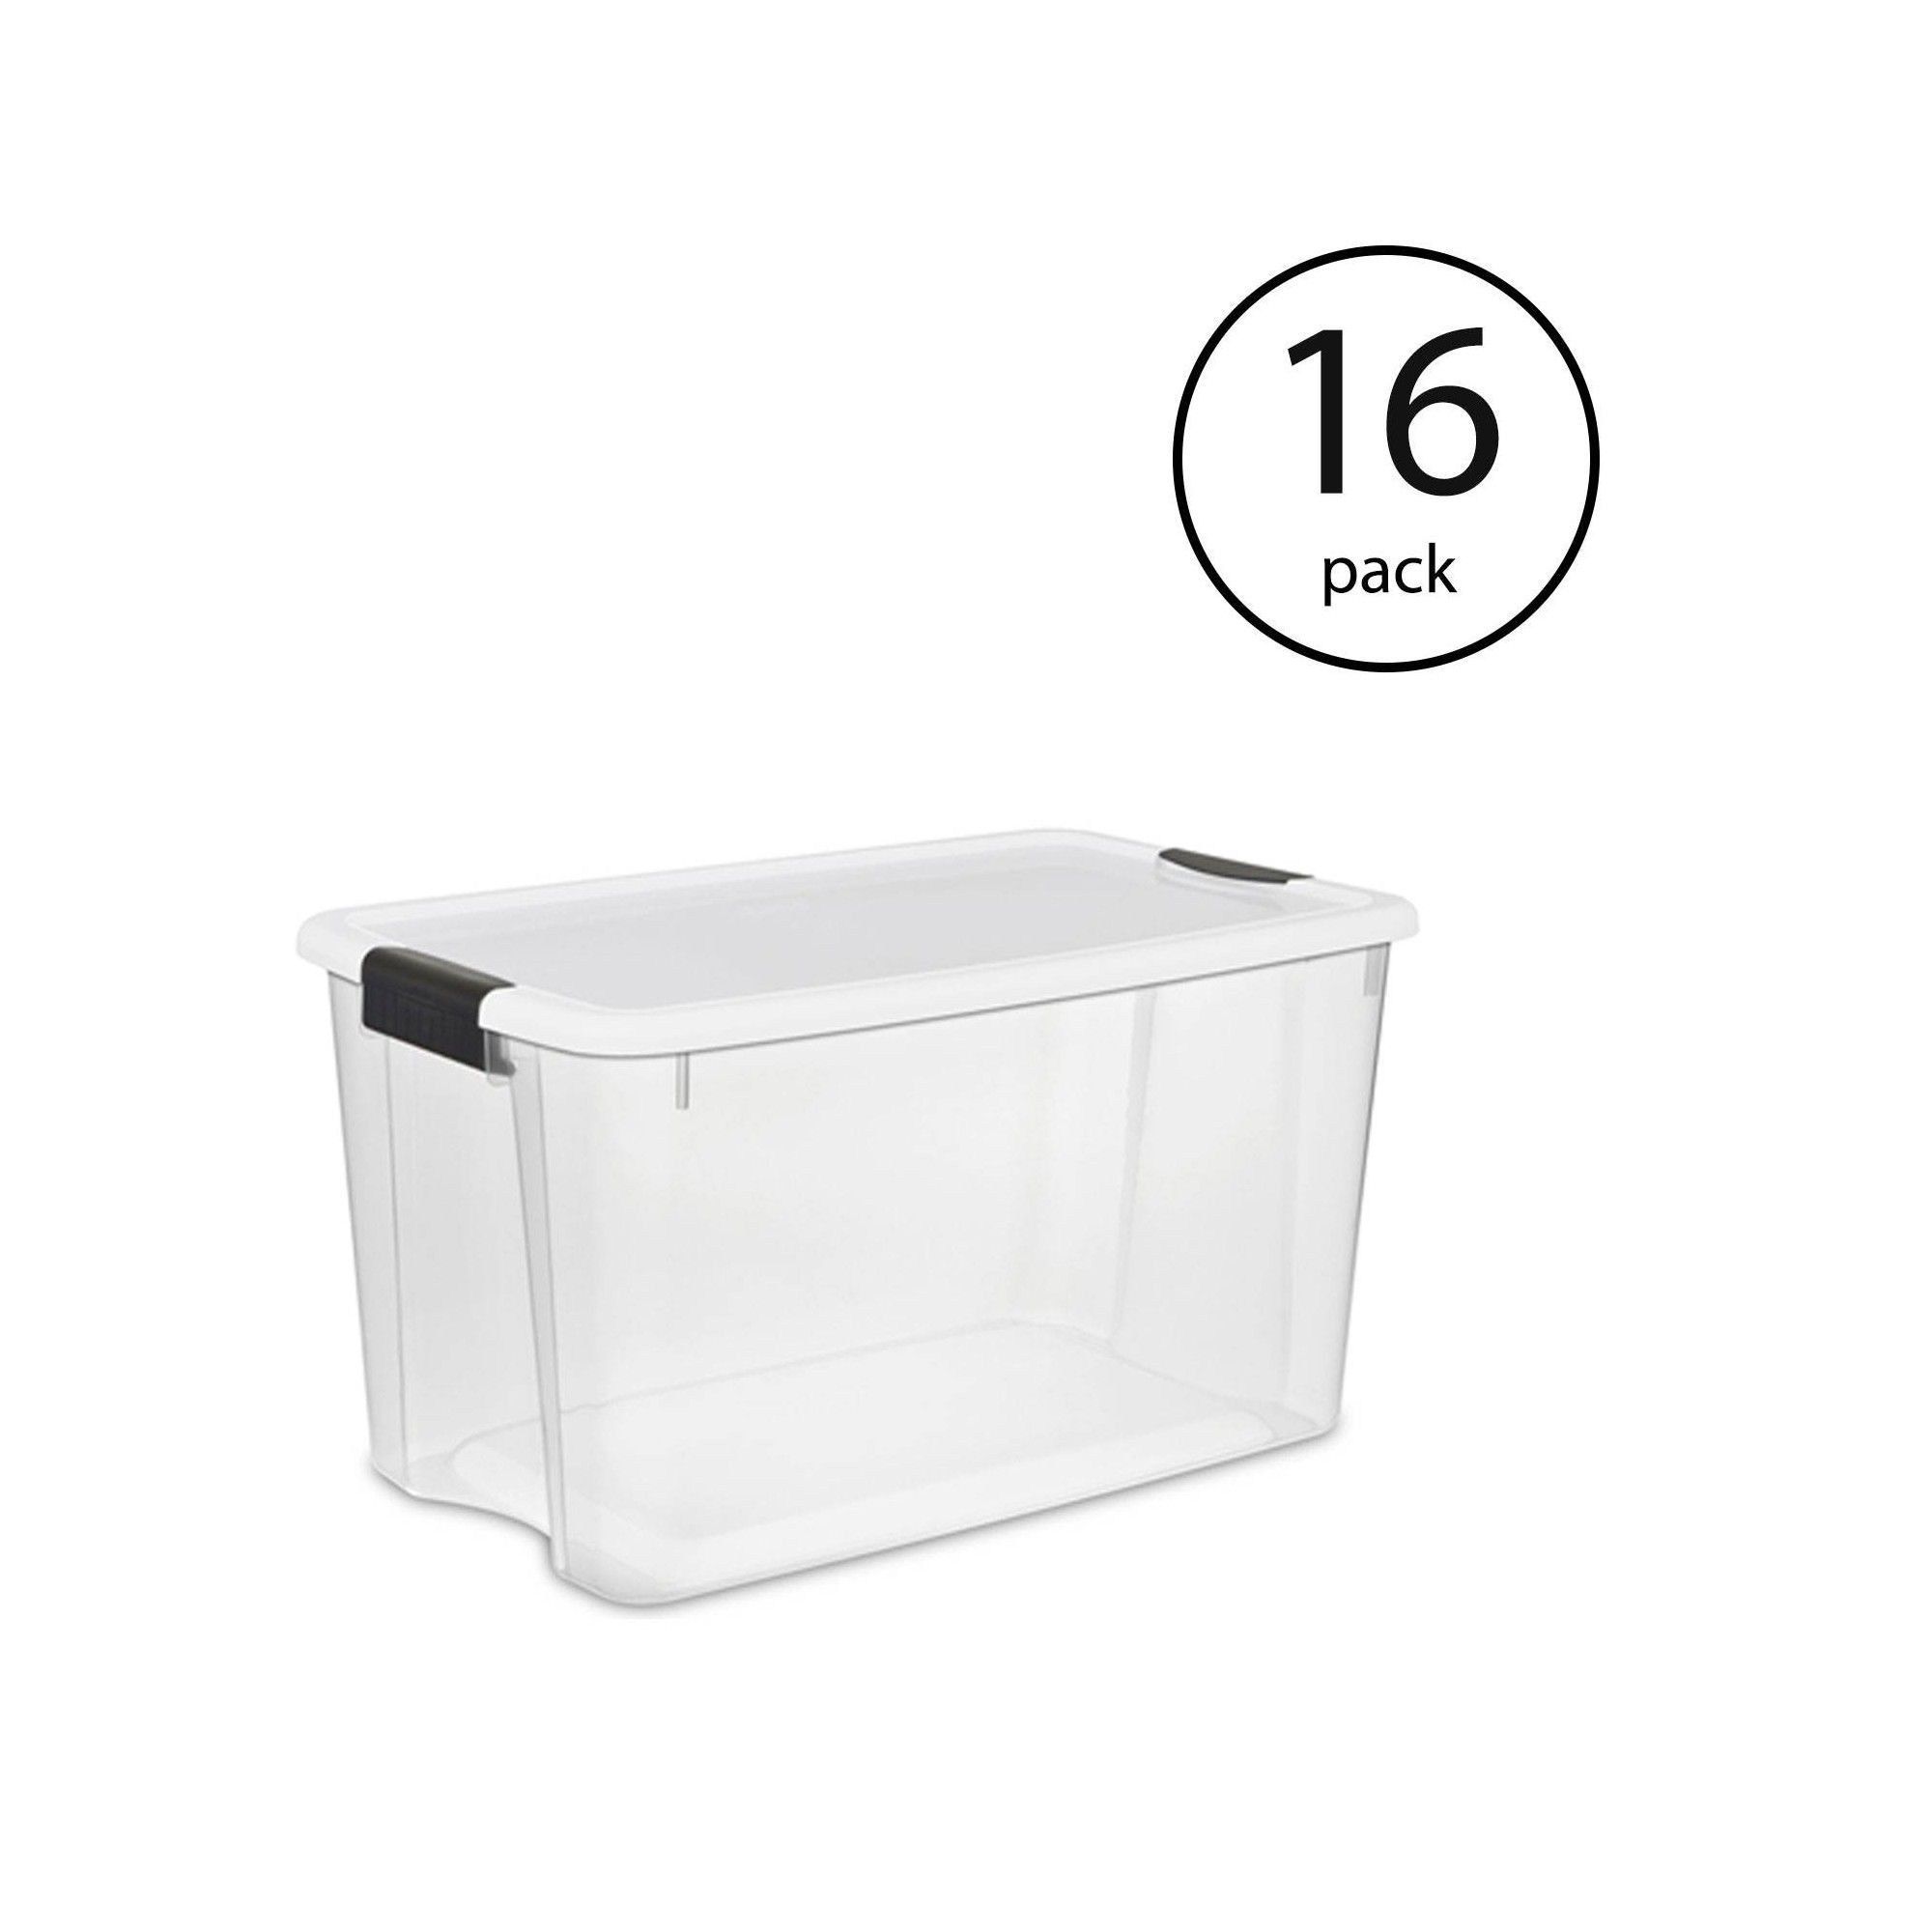 Sterilite 116 Quart Ultra Latching Storage Tote Box Container Clear 16 Pack Storing Blankets Storage Tubs Plastic Storage